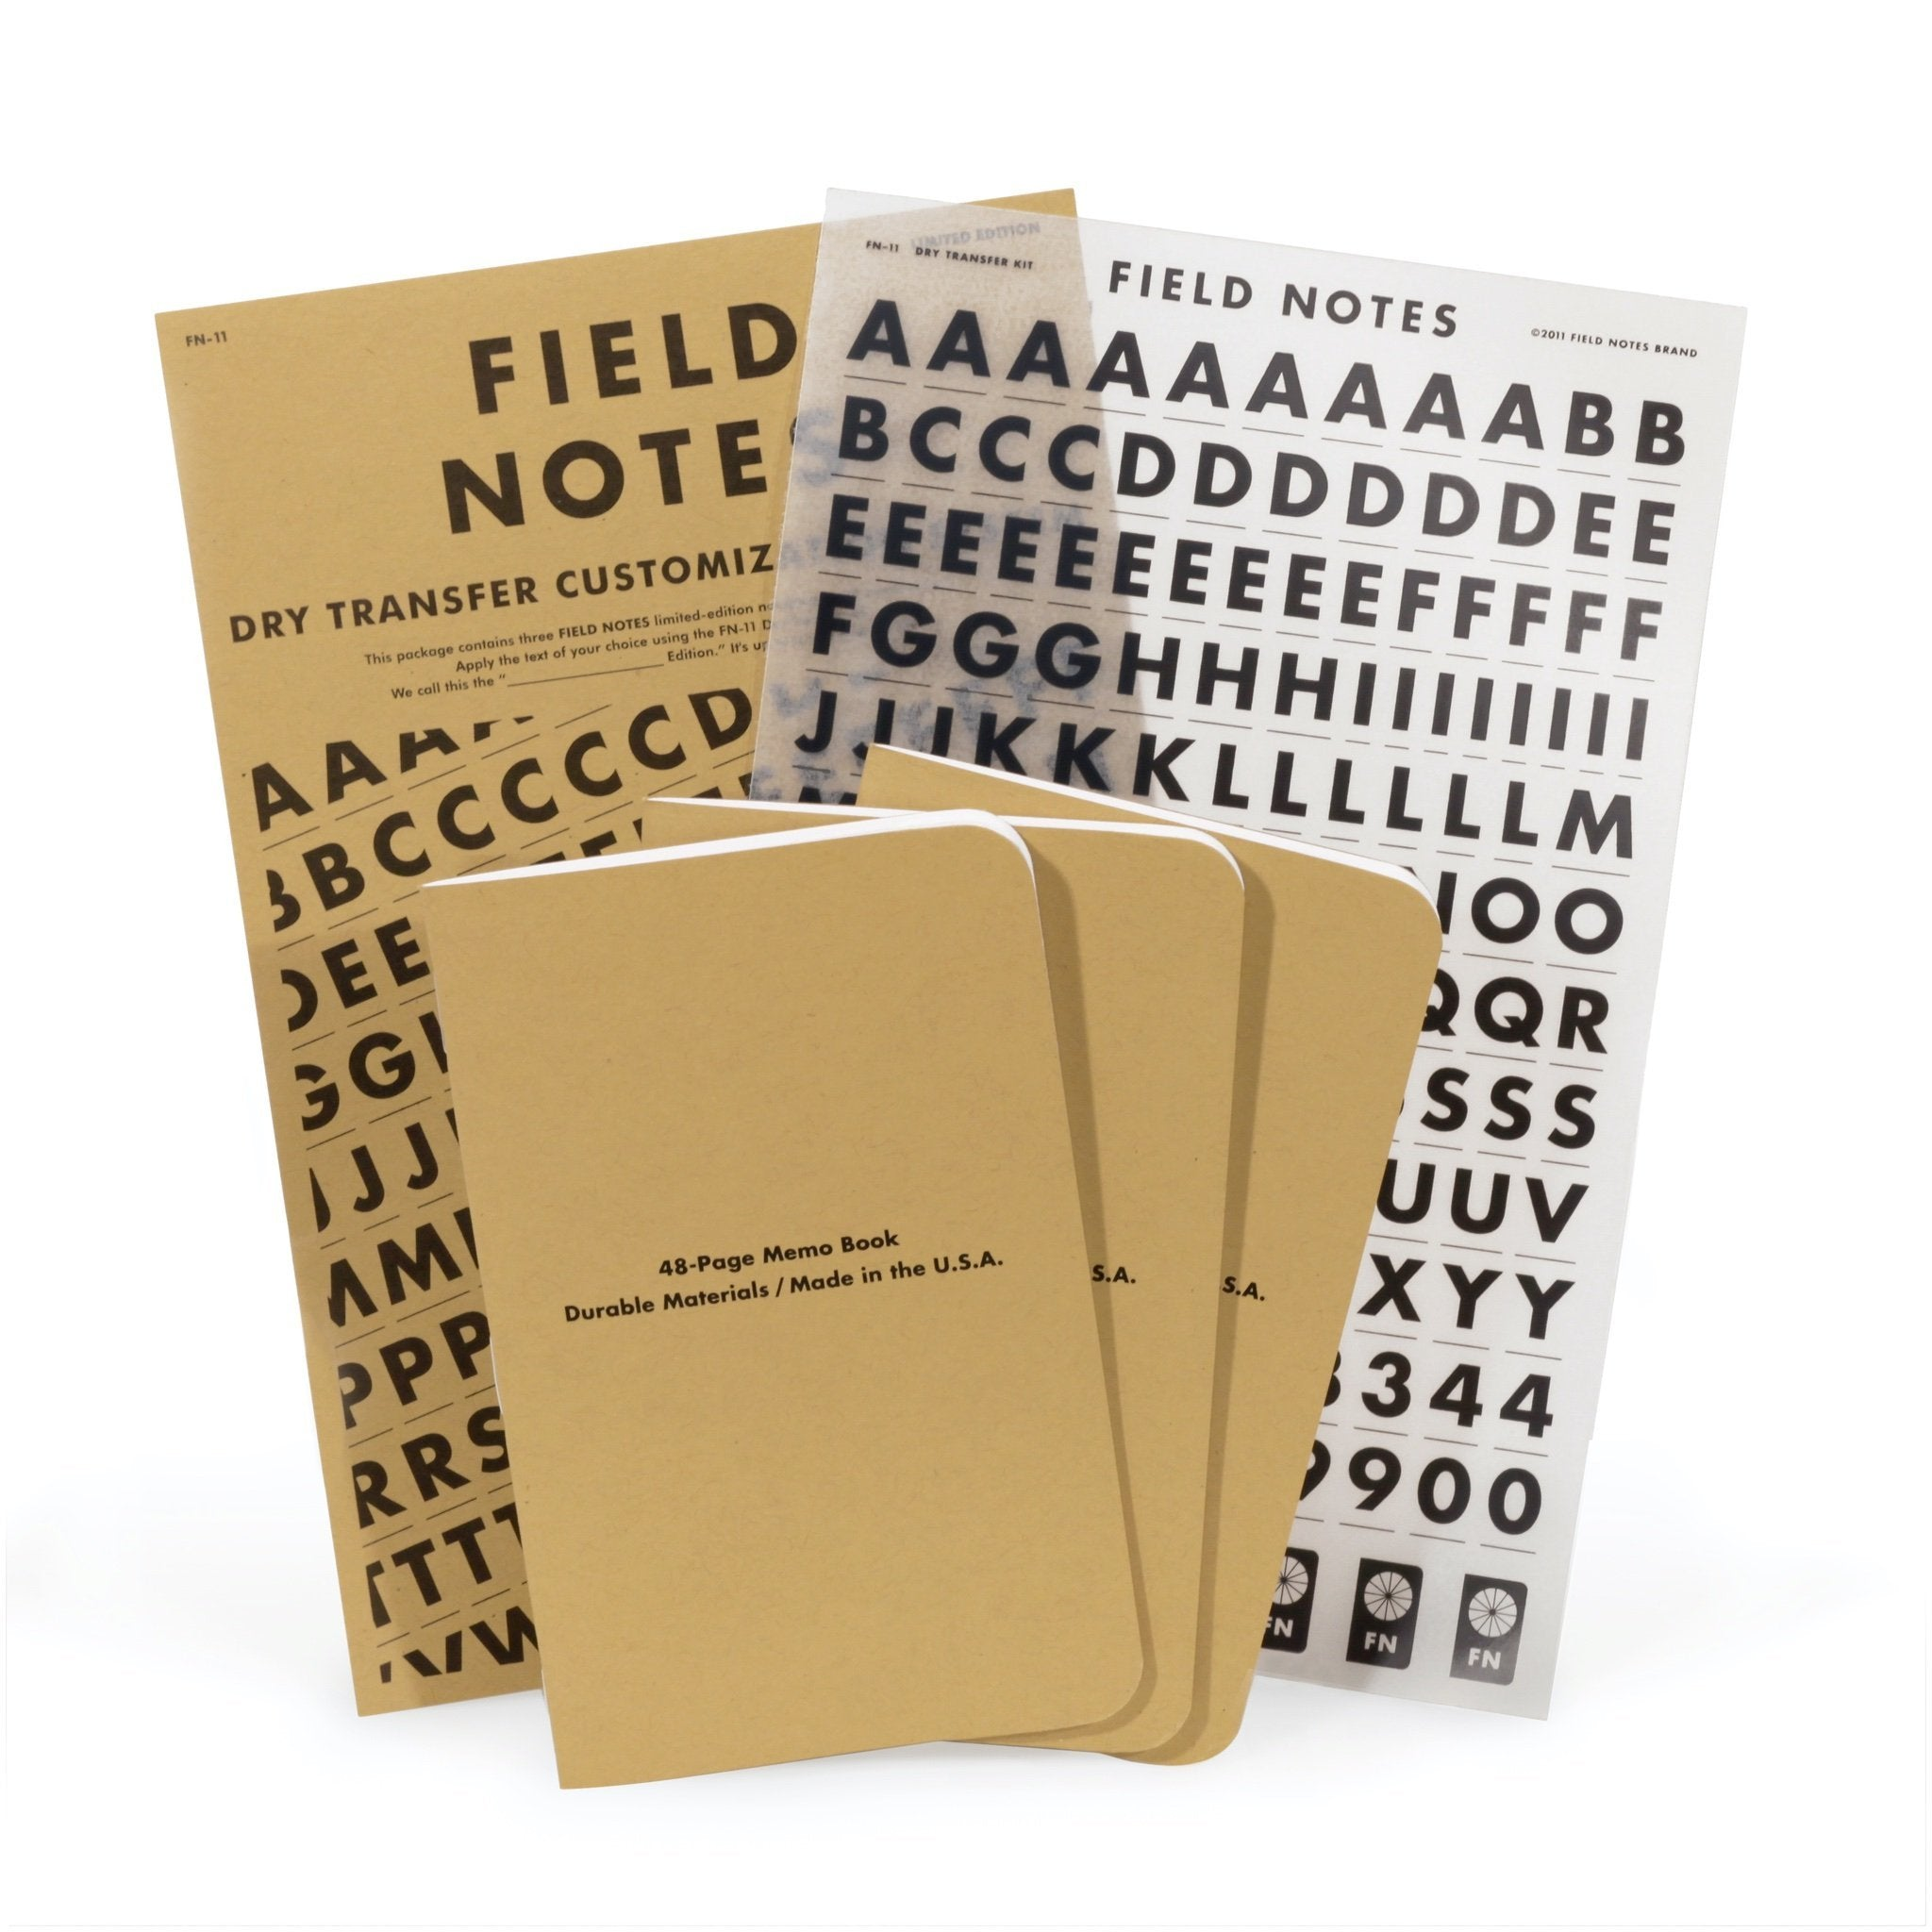 Field Notes Dry Transfer - Contents - Notegeist dot com